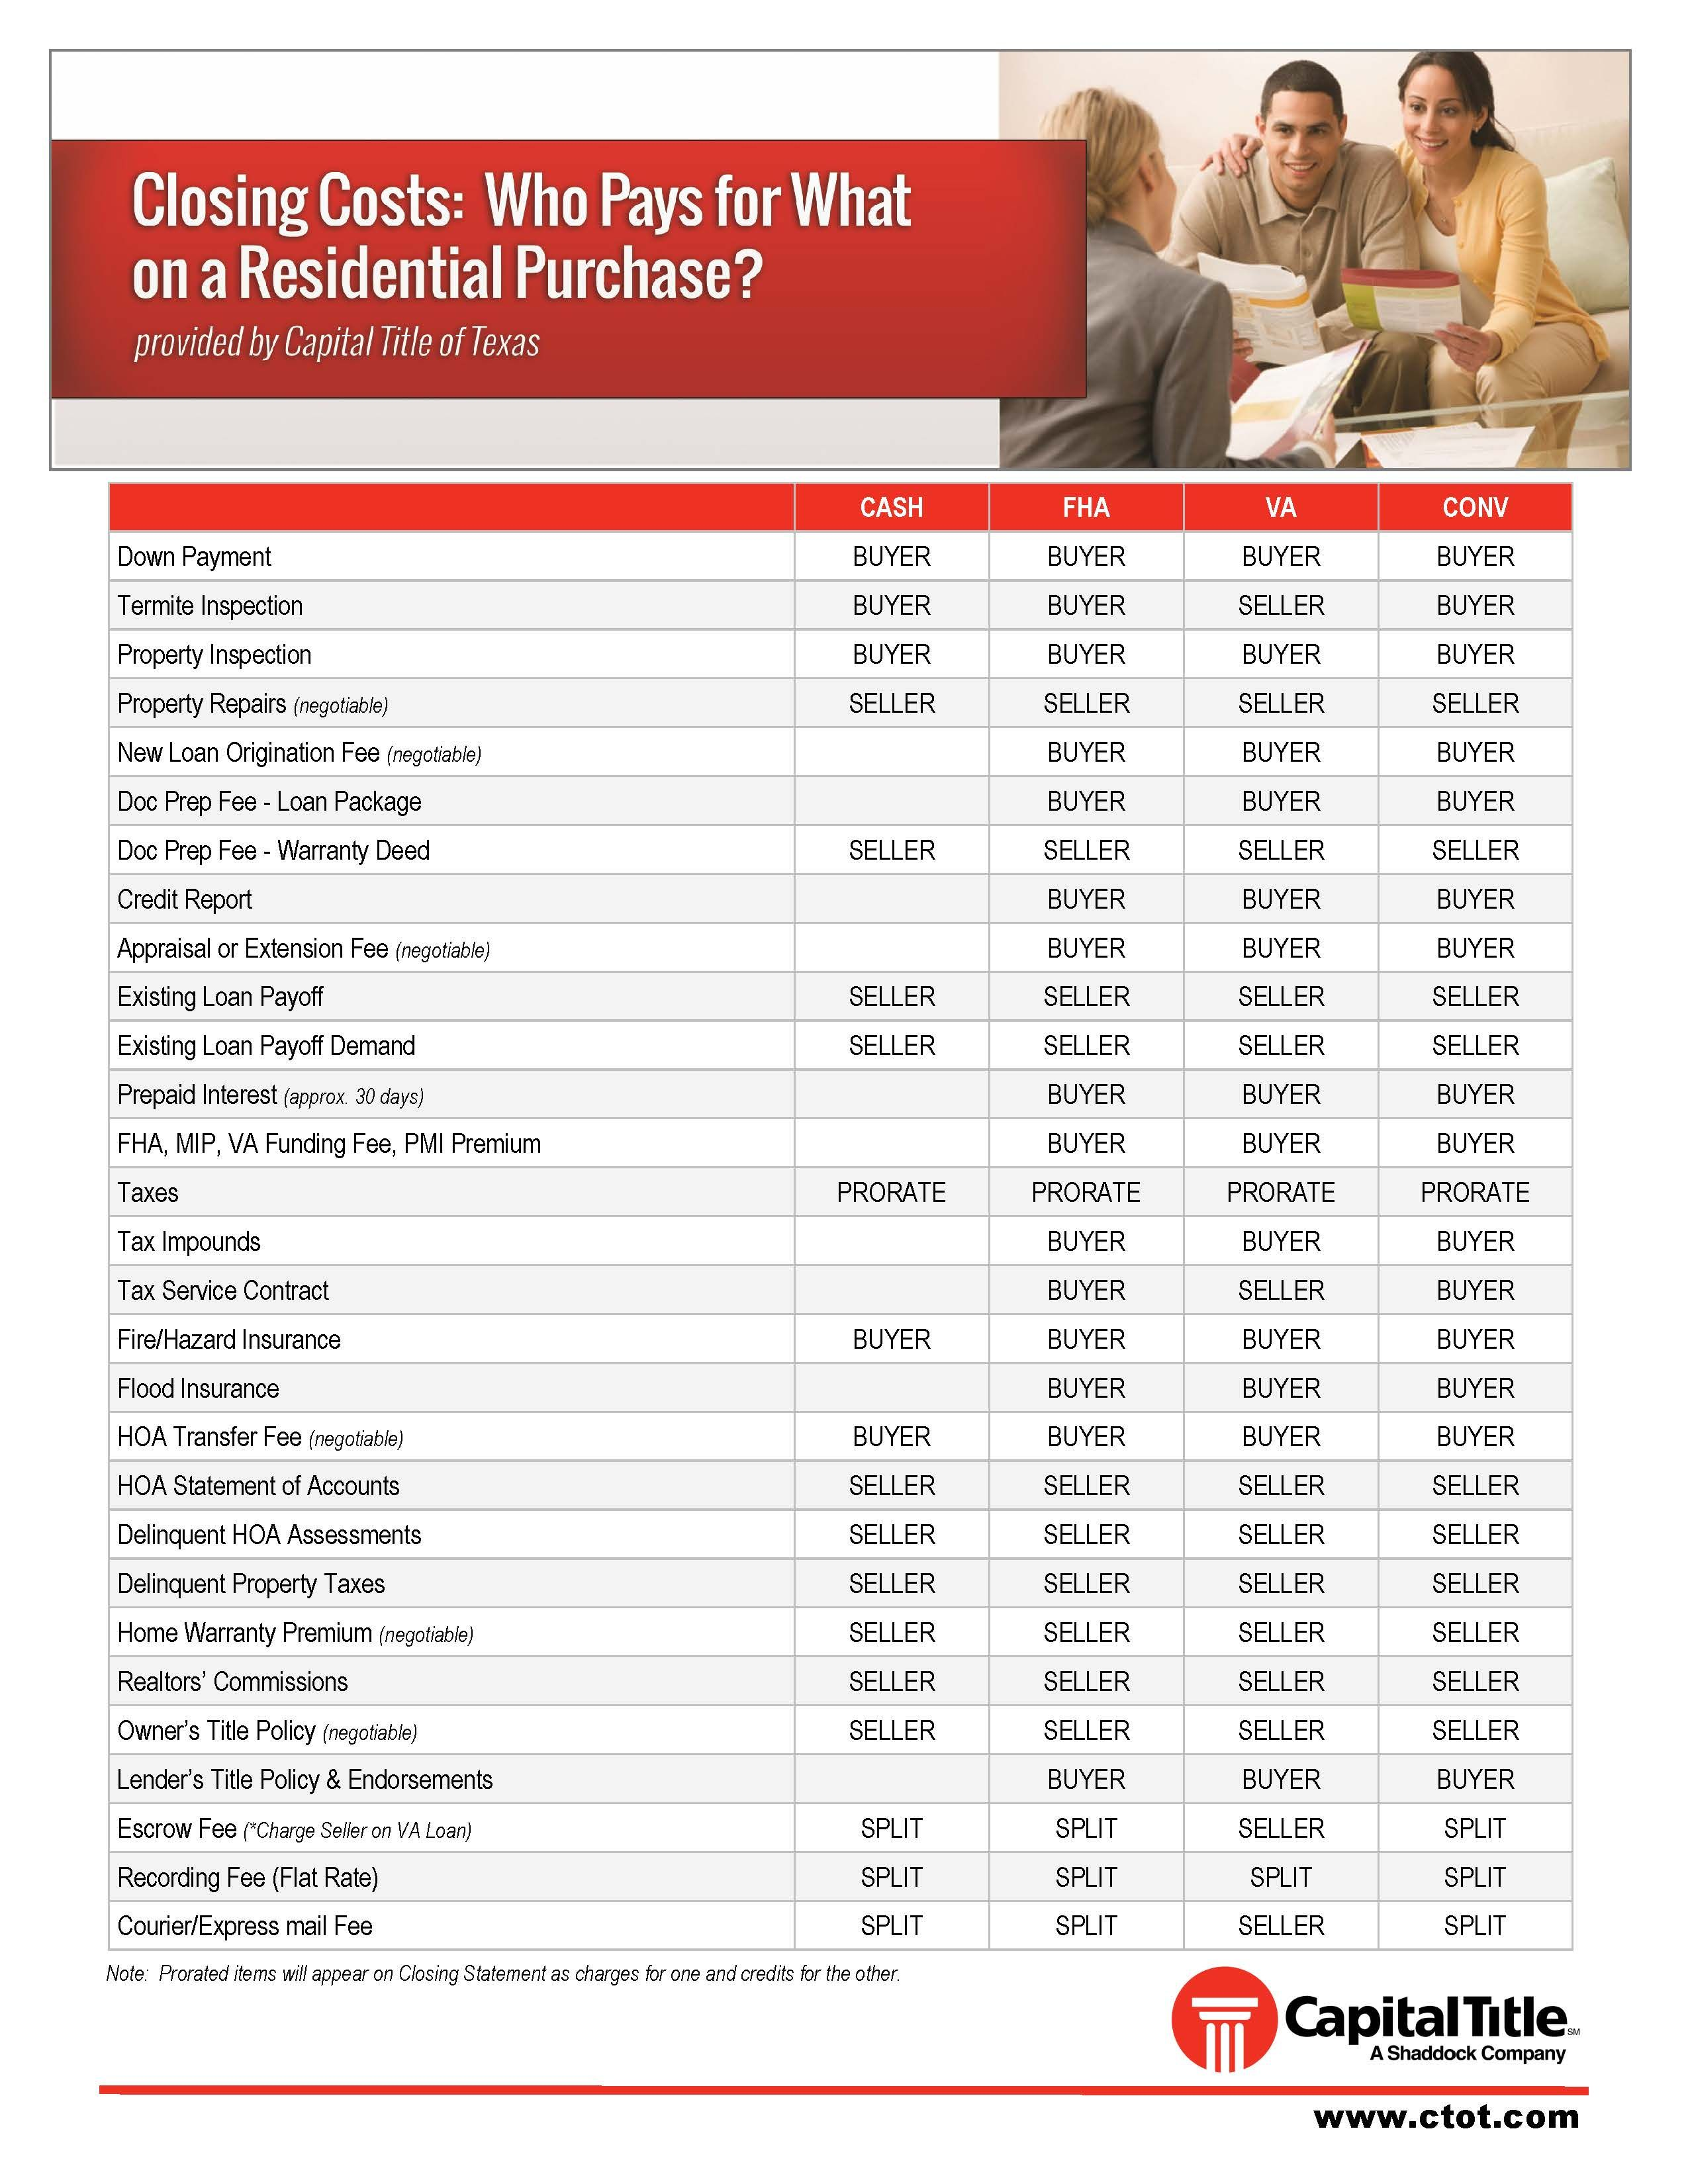 Pin By Capital Title Houston Beaumo On Buyers Origination Fee Informative Closing Costs